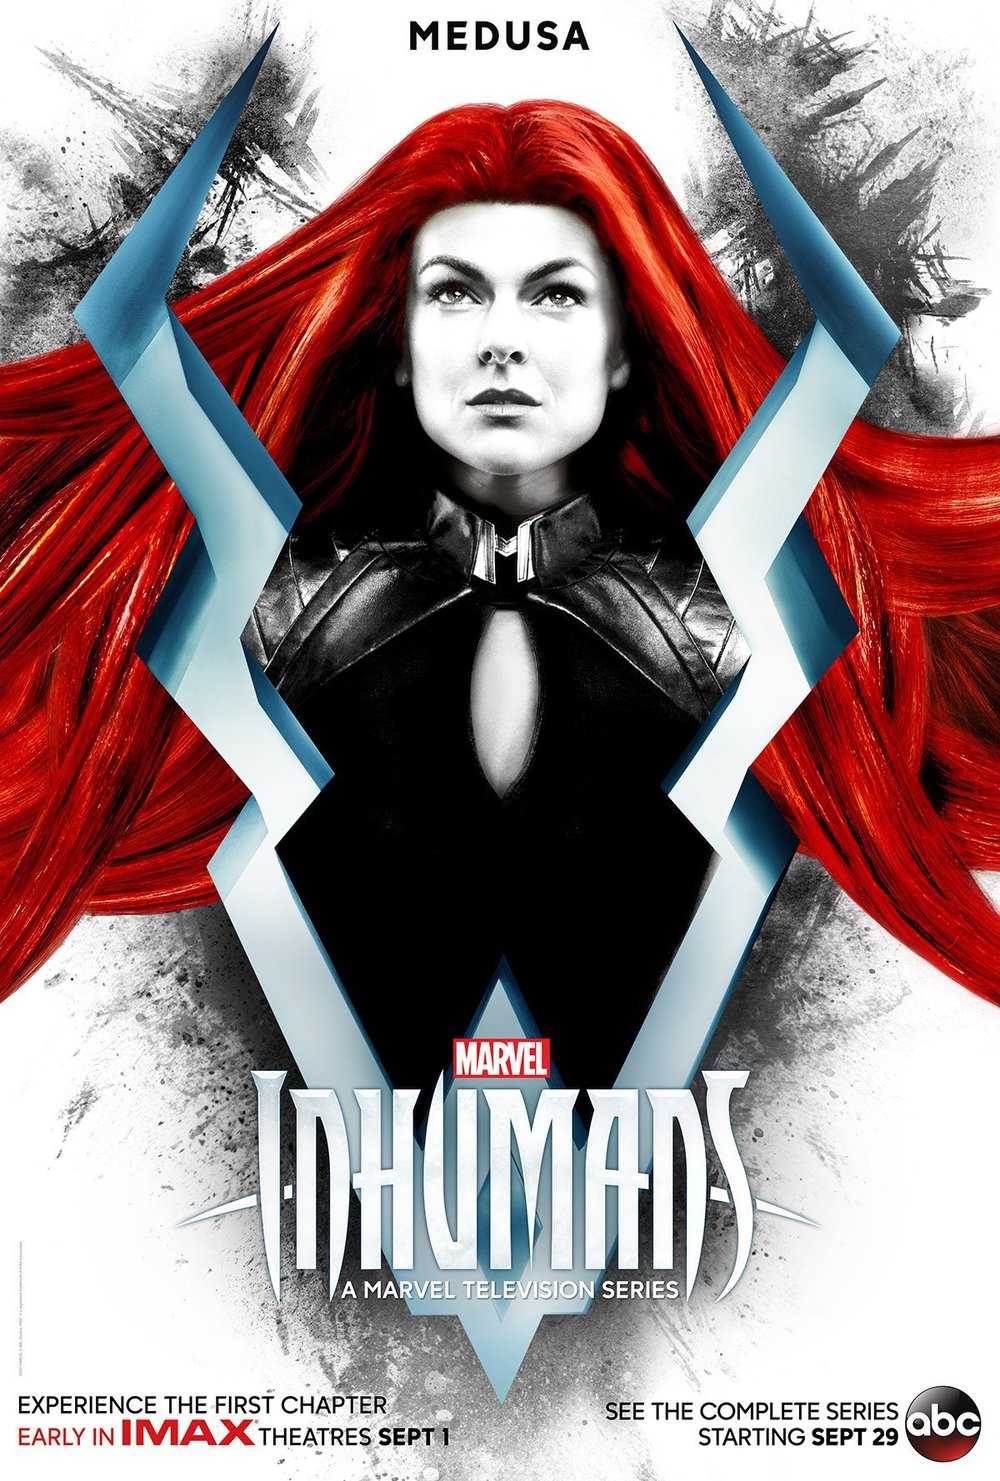 marvels-the-inhumans-character-posters-medusa-1010813.jpg